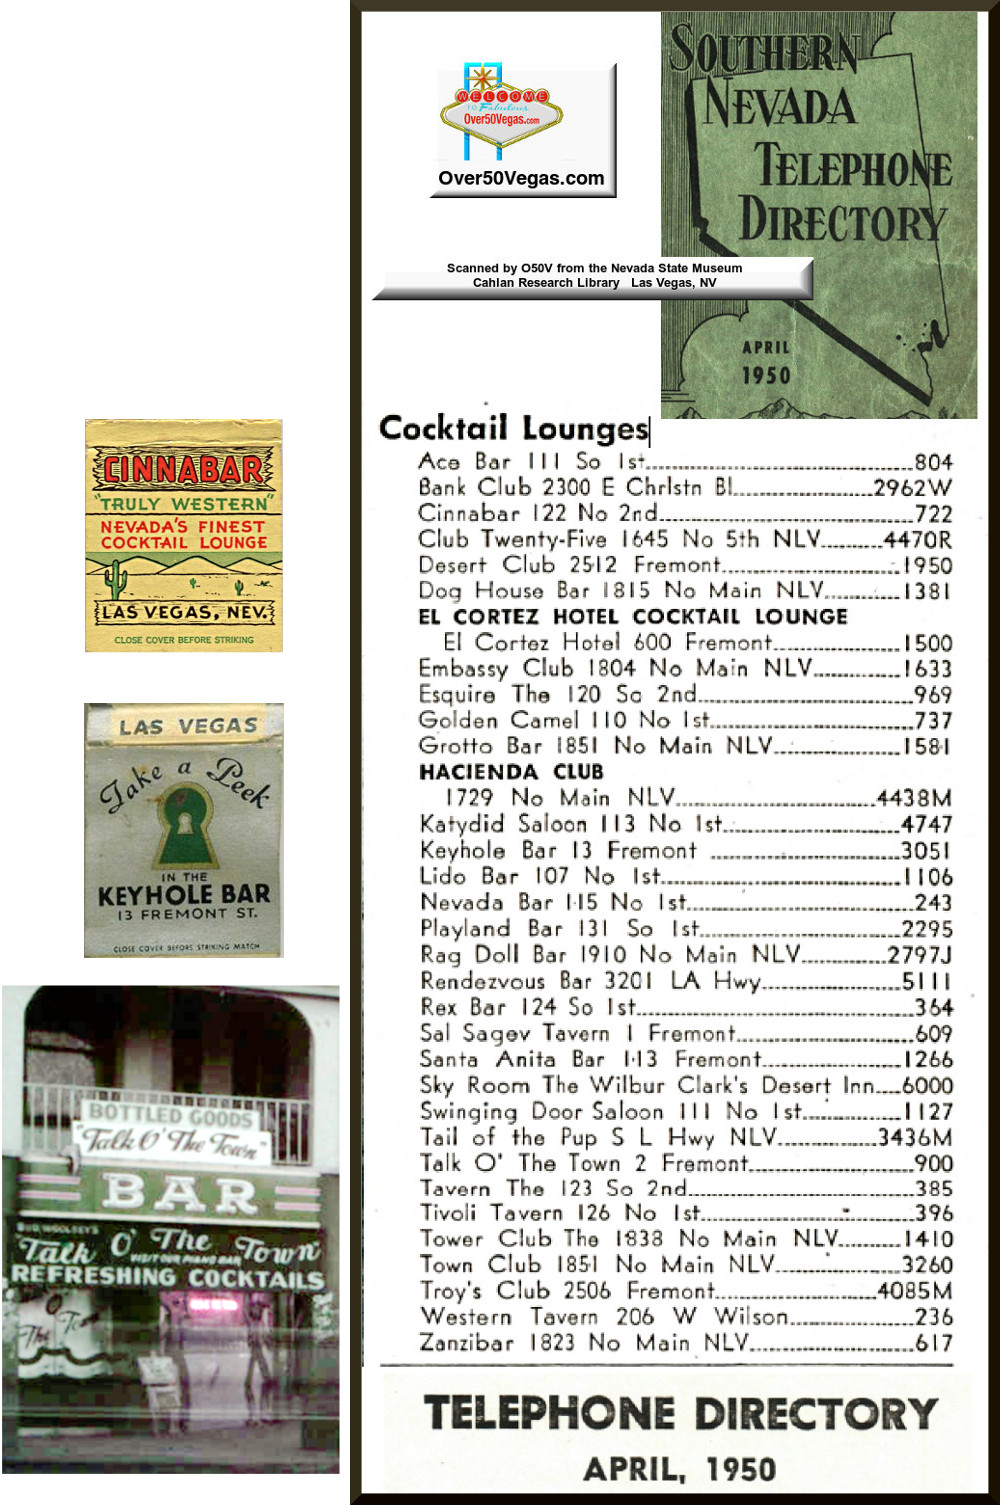 Cocktail Lounges and Bars-April 1950 in Las Vegas, NV